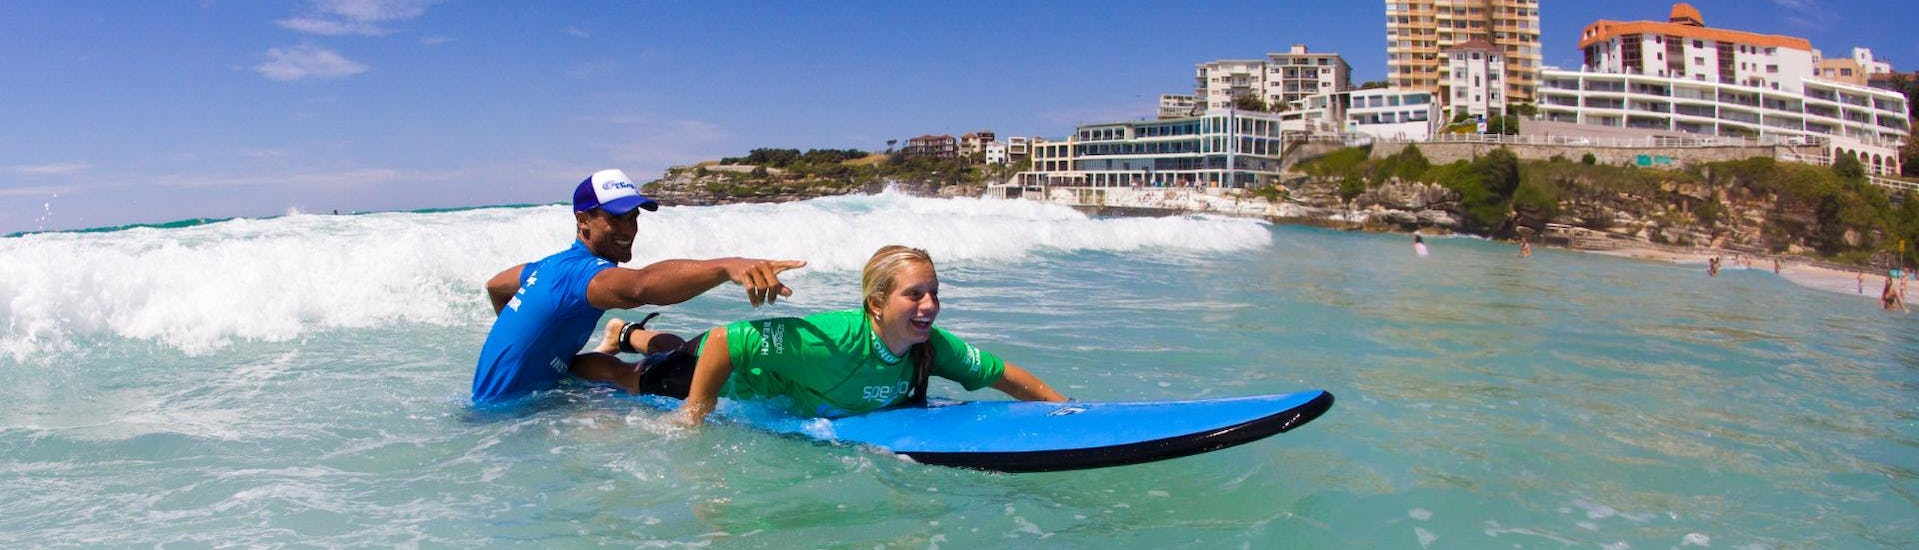 During the Surfing Lessons in Bondi Beach for Teens & Adults - Beginner, a young woman is having great time whilst learning how to surf under the guidance of an experienced surf instructor from Let's Go Surfing.